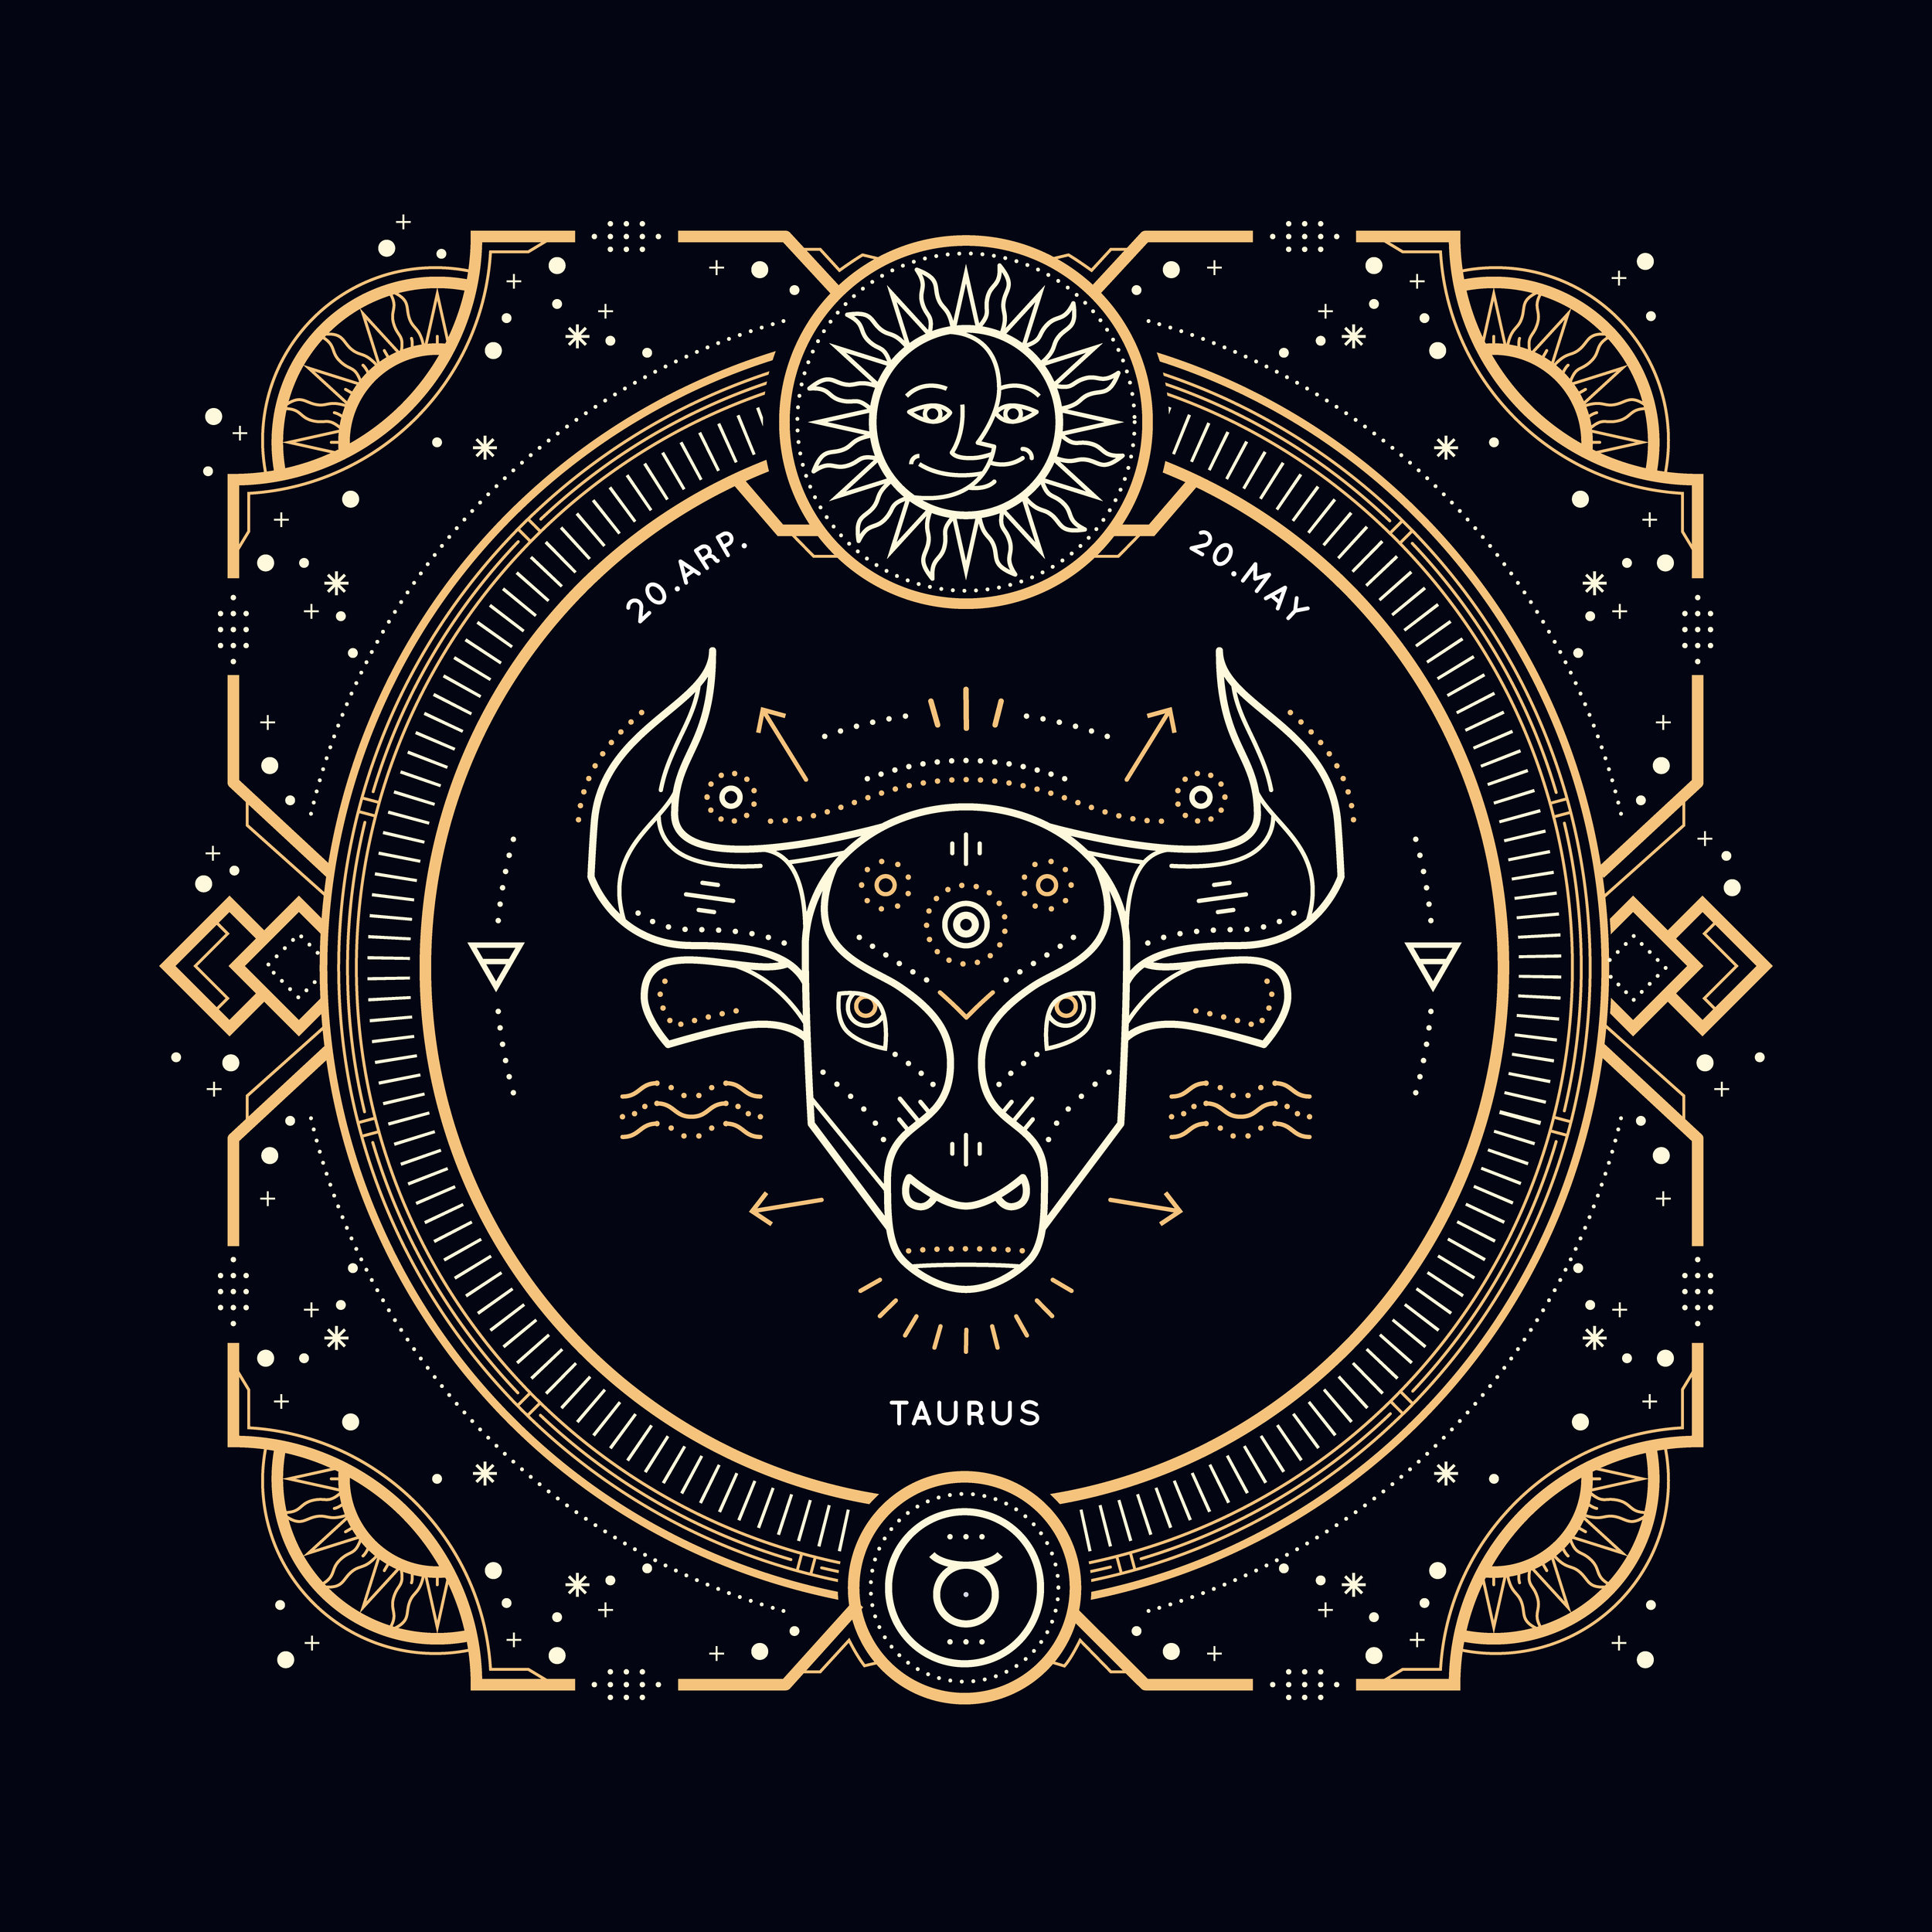 Zodiac-signs-black-gold_Taurus.jpg